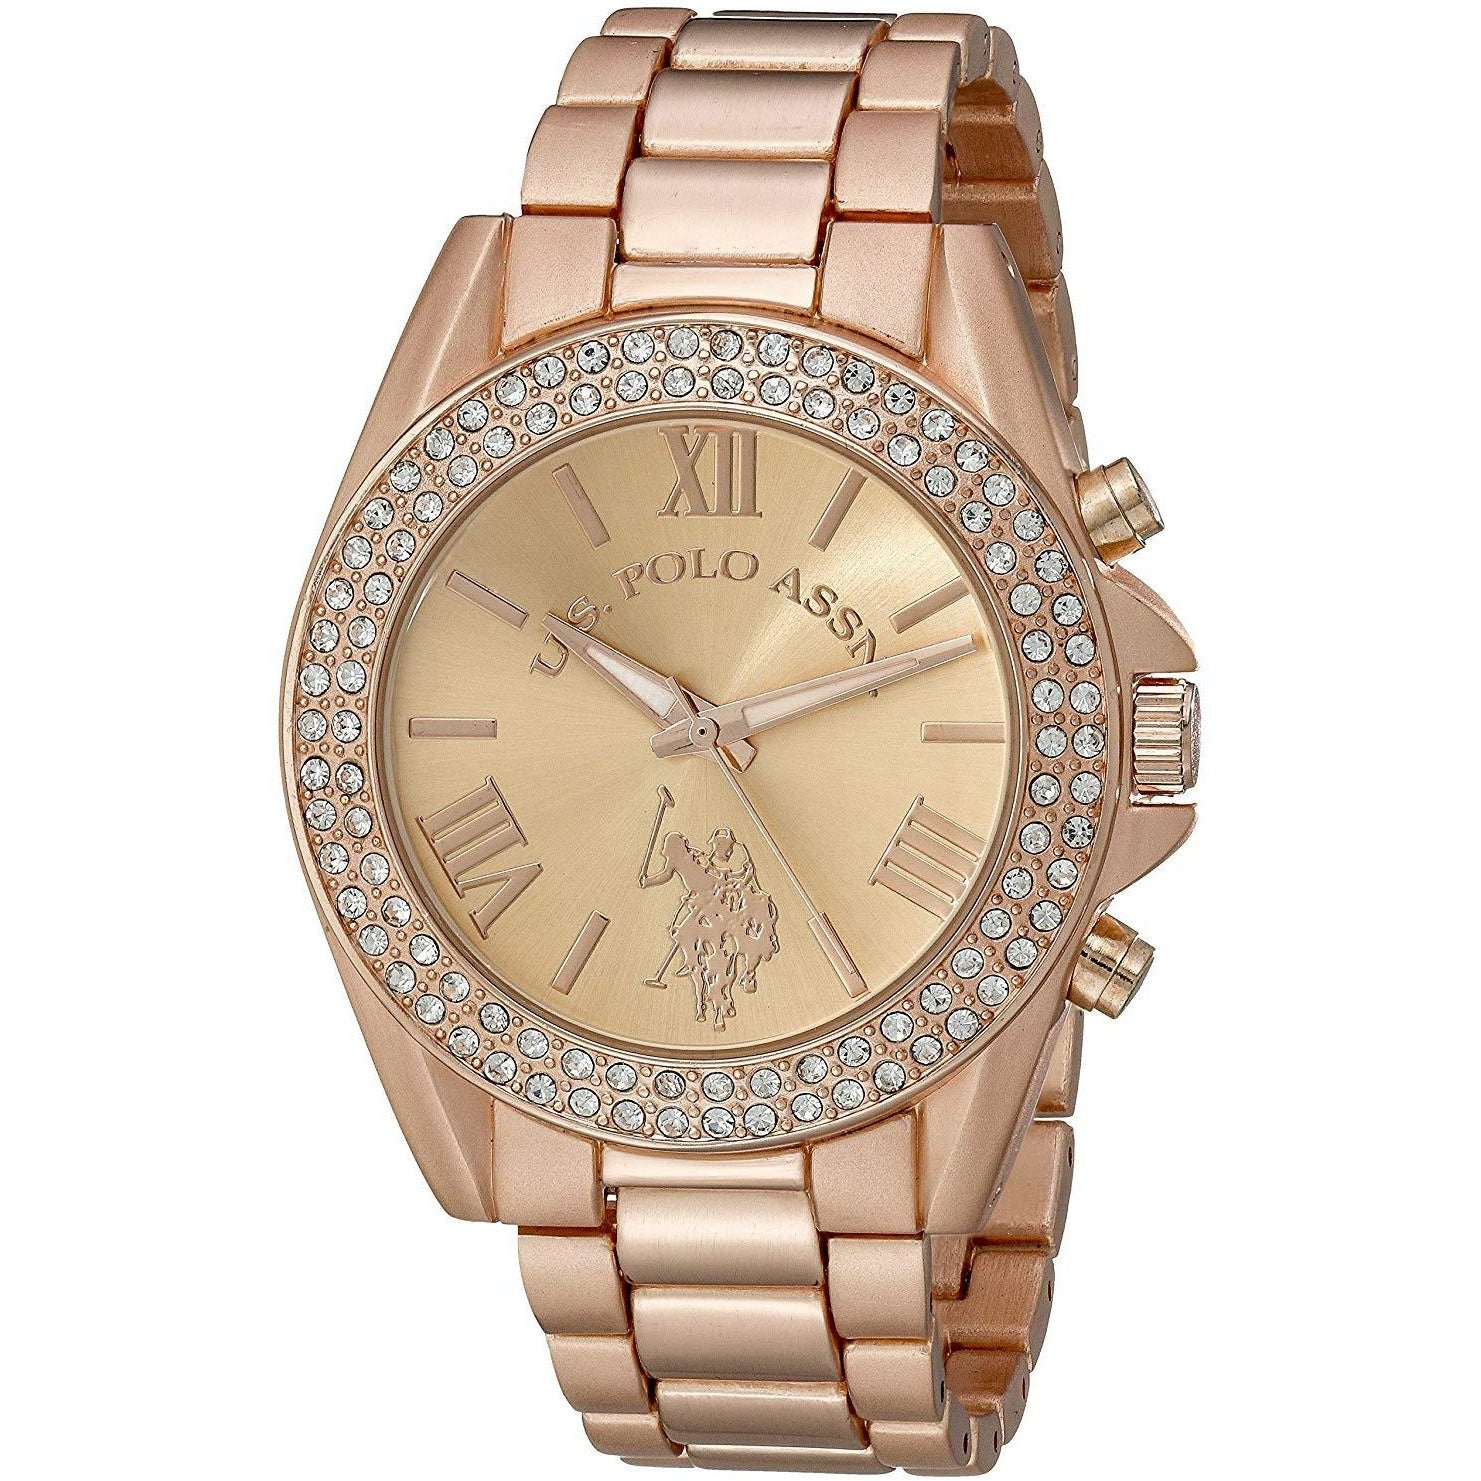 U.S. Polo Assn. Women's USC40037 Rose Gold-Tone Watch with Crystals